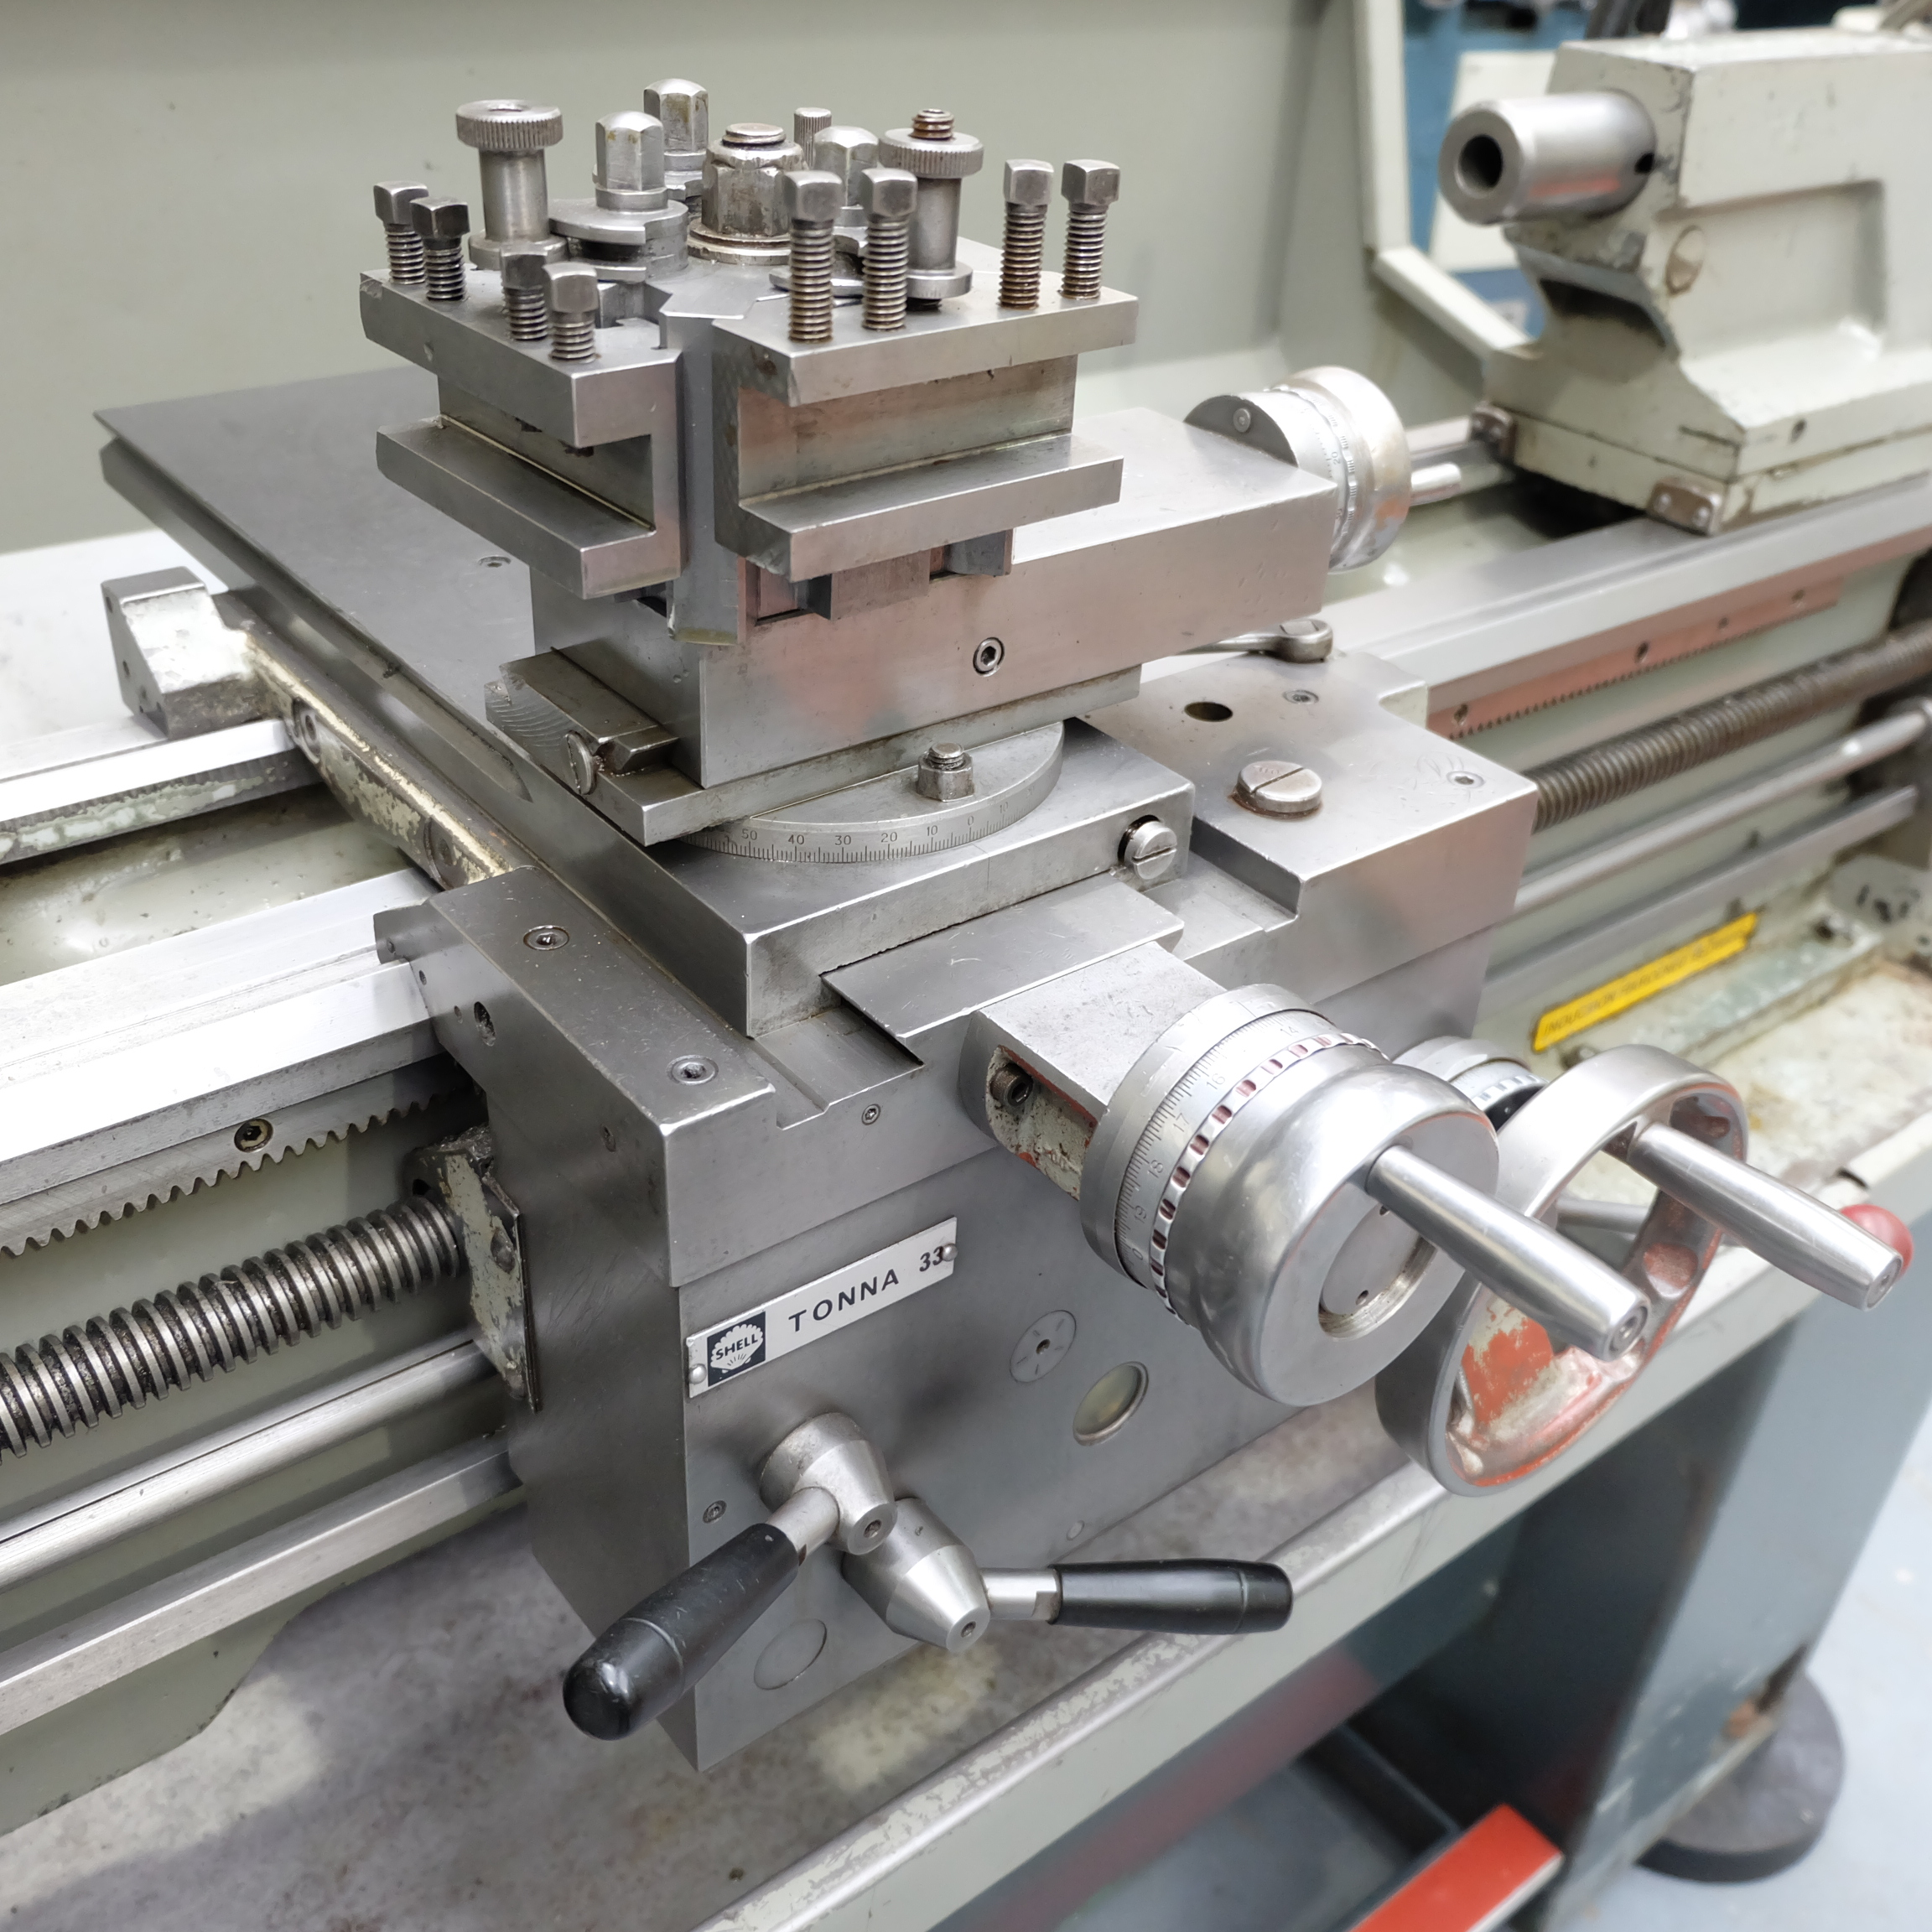 Colchester Student Gap Bed Centre Lathe. - Image 5 of 7